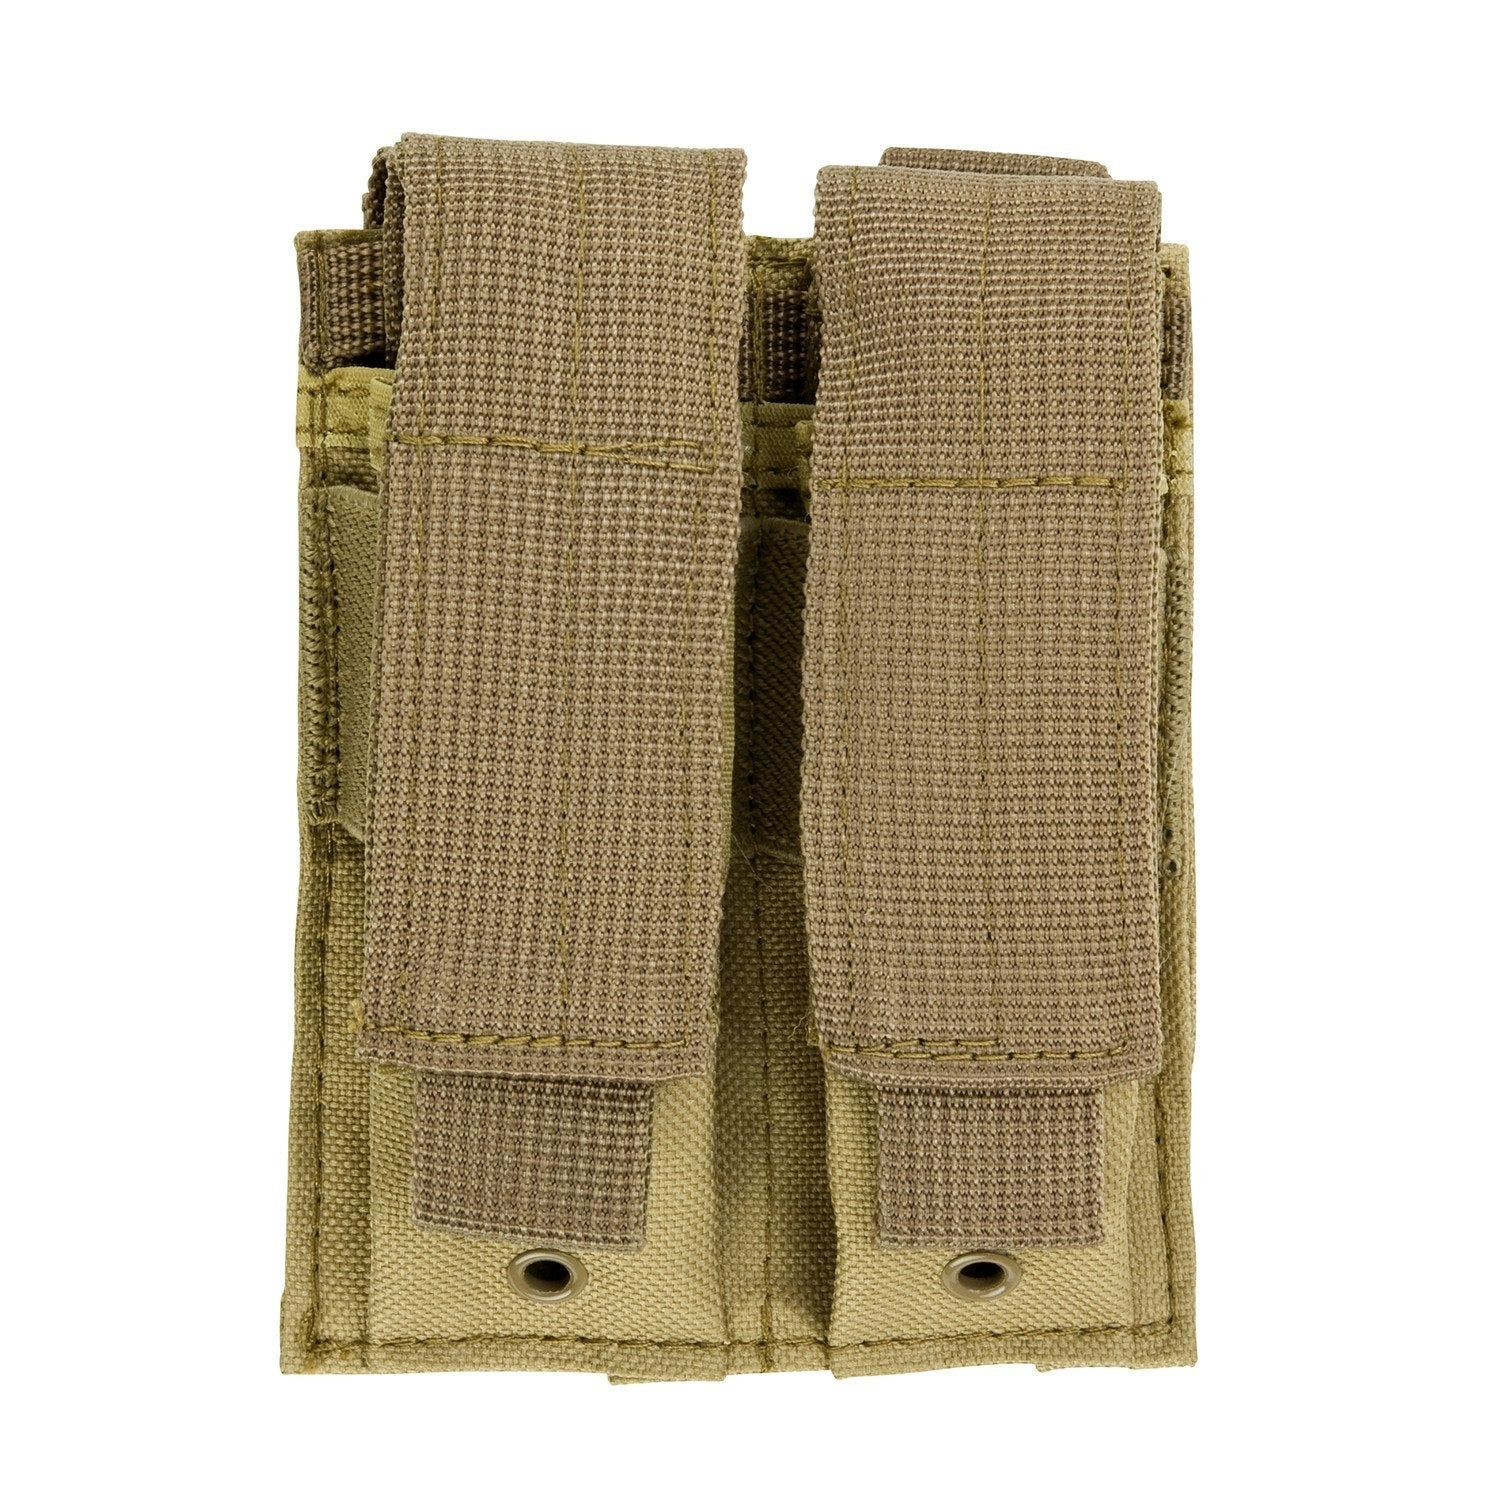 DOUBLE PISTOL MAG POUCH - TAN - Molle Pouches and Accessories - VISM - Colonel Mustard